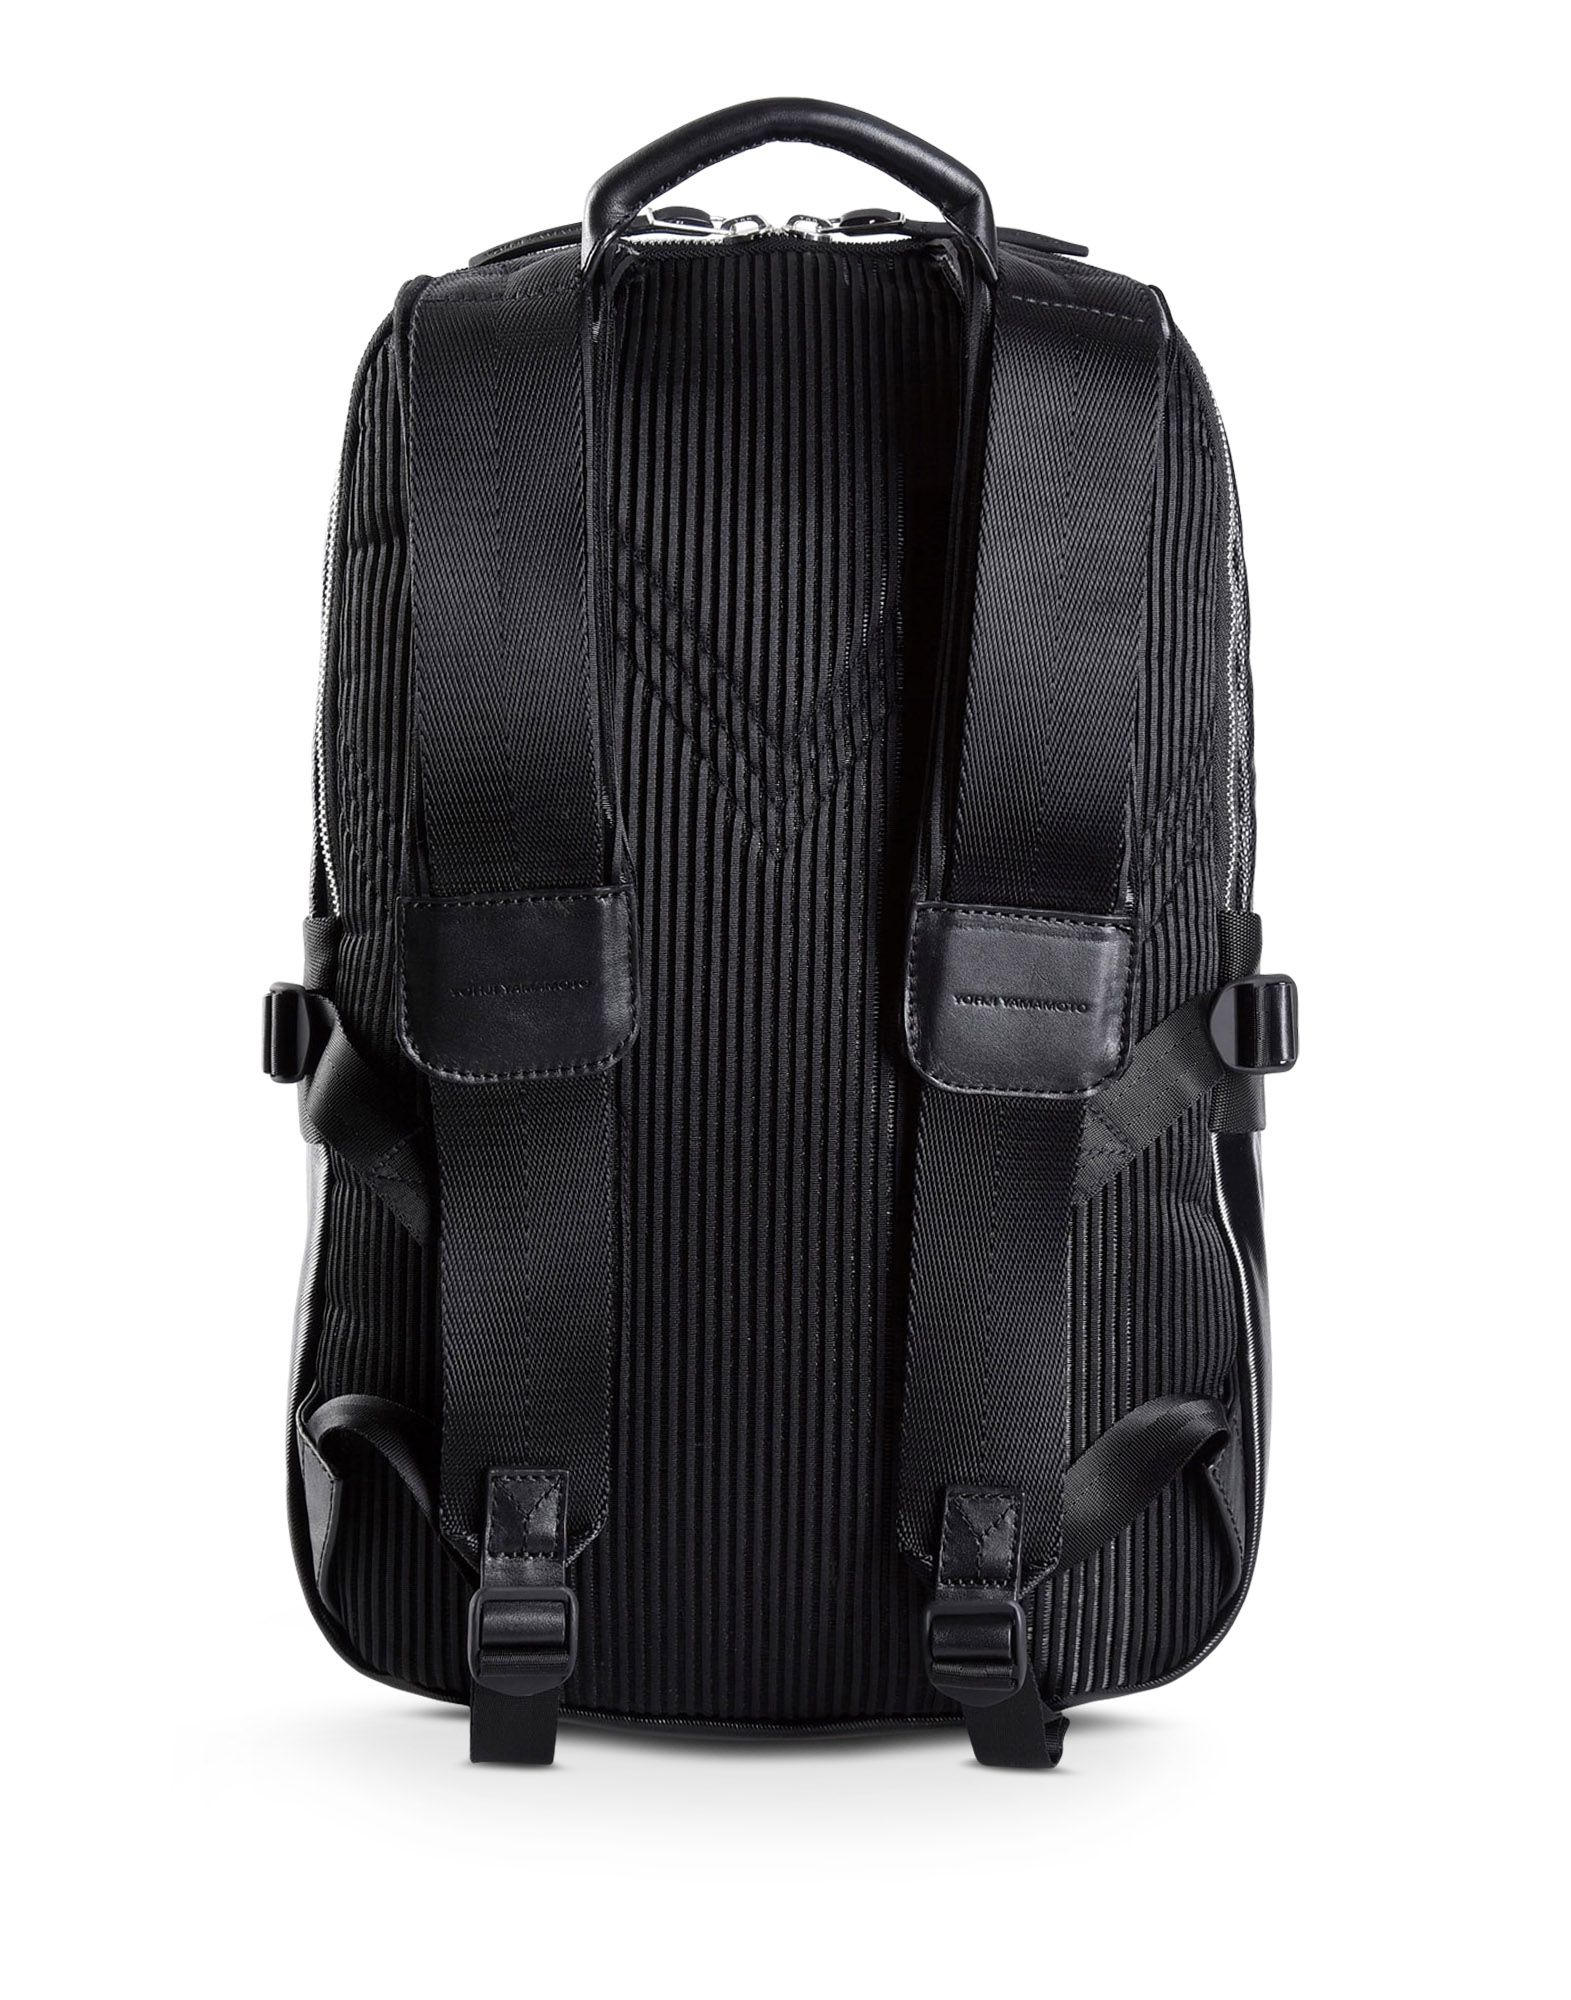 Y-3 QASA LEATHER BACKPACK BAGS unisex Y-3 adidas